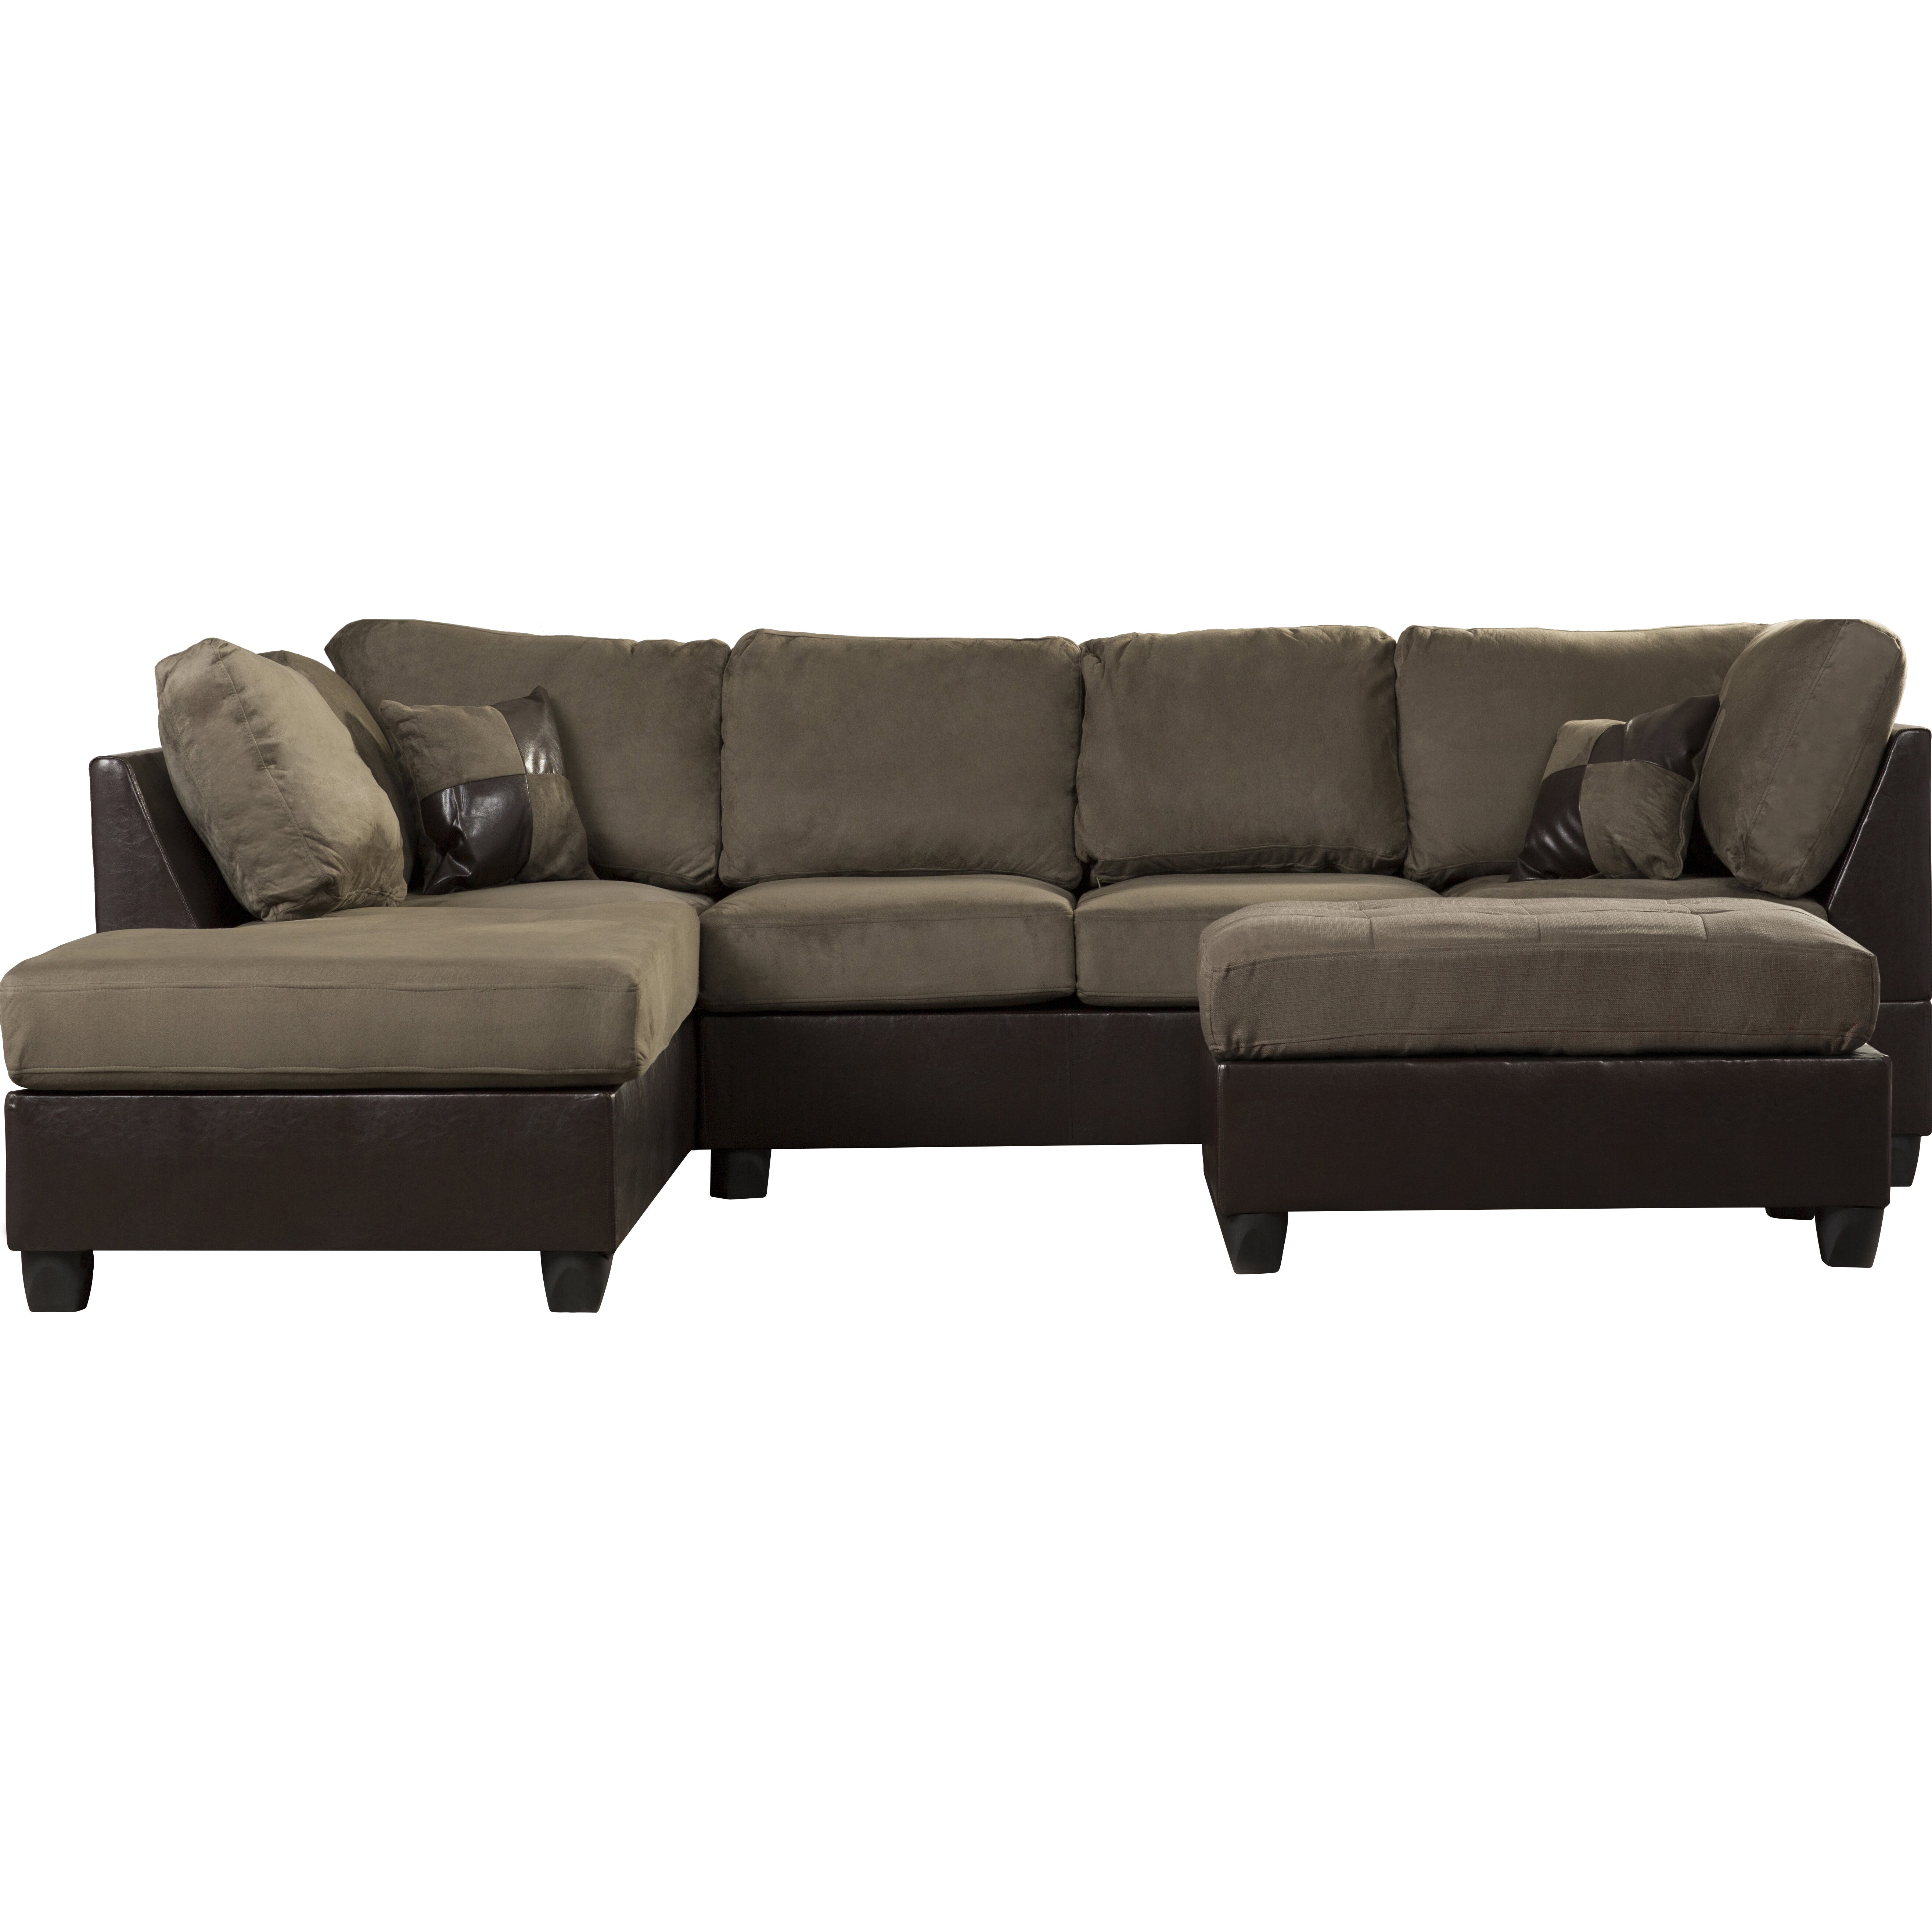 Andover Mills Corporate 112 Reversible Chaise Sectional Sofa Reviews Wayfair